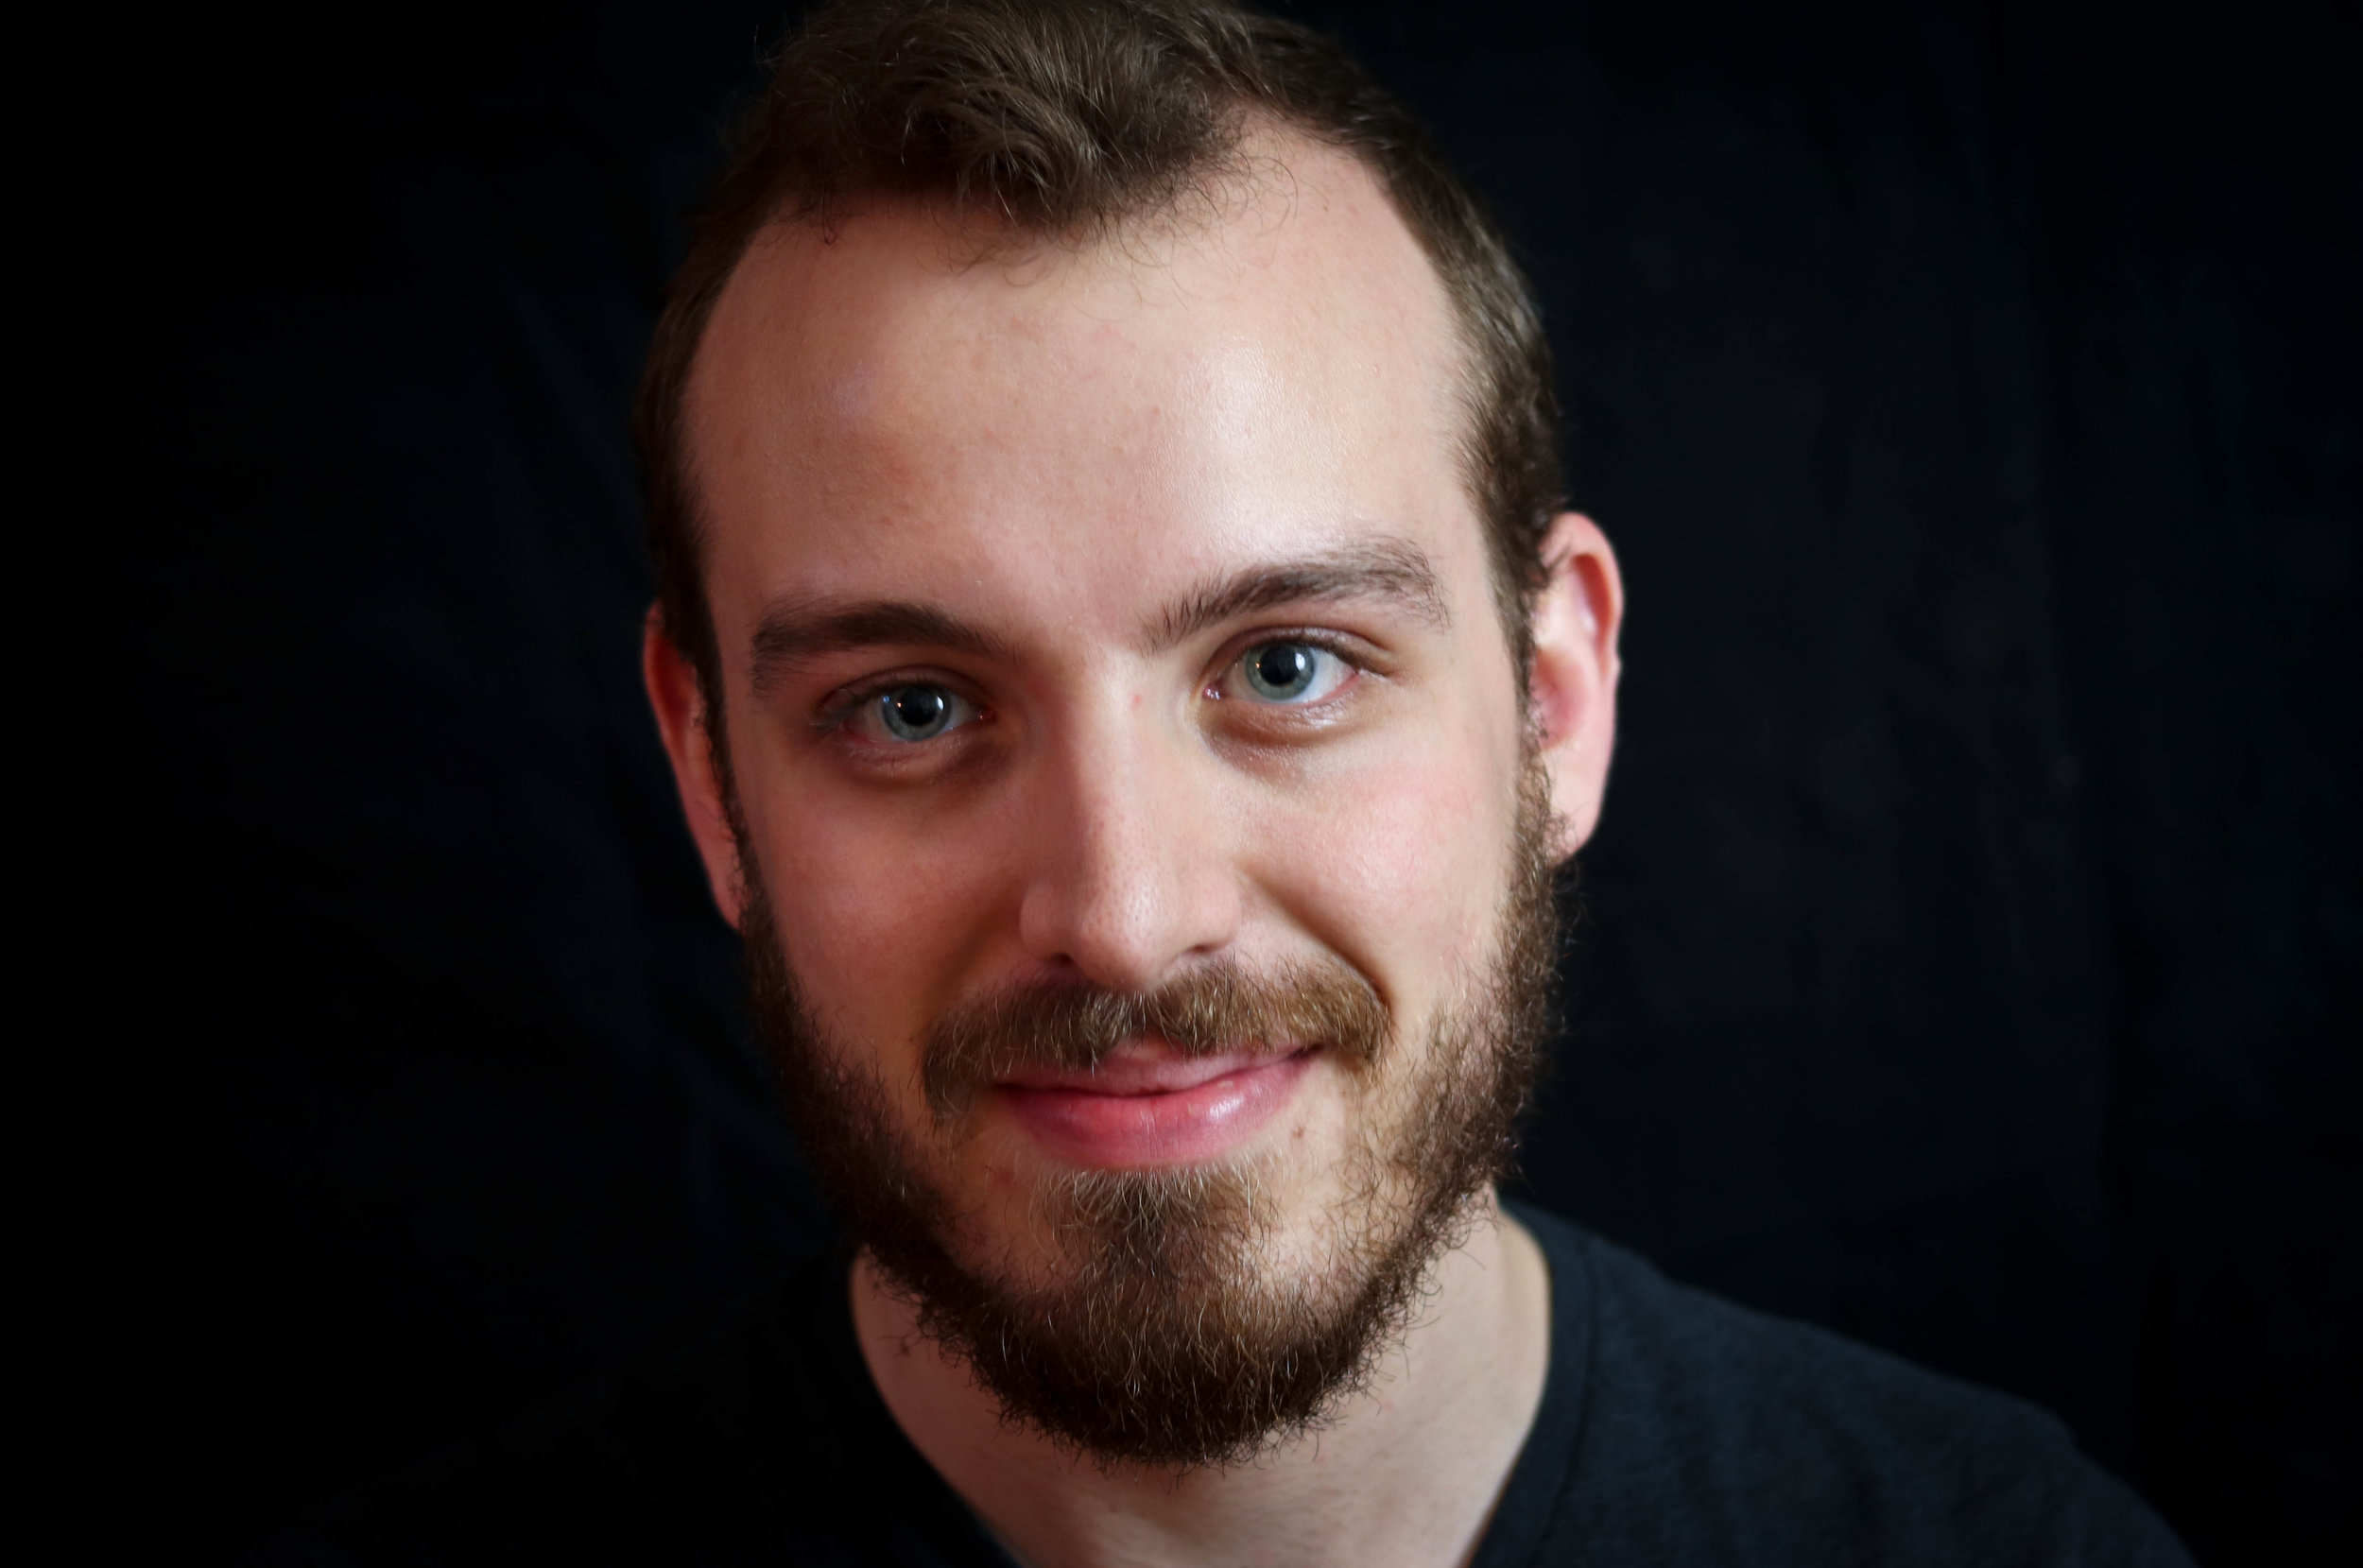 Tyler Danhaus/stage manager - NYC:Smart Blonde; Anne of Green Gables Part 1 and 2; Marry Me a Little; Titanique;You, Me, I, We; Danny and the Deep Blue Sea; Women on Fire; SCOOP; She Persisted; Andromeda Speaks. Regional: Hangar Theatre, The Rose Theater, Chester Theatre Company. BFA UW-Milwaukee.